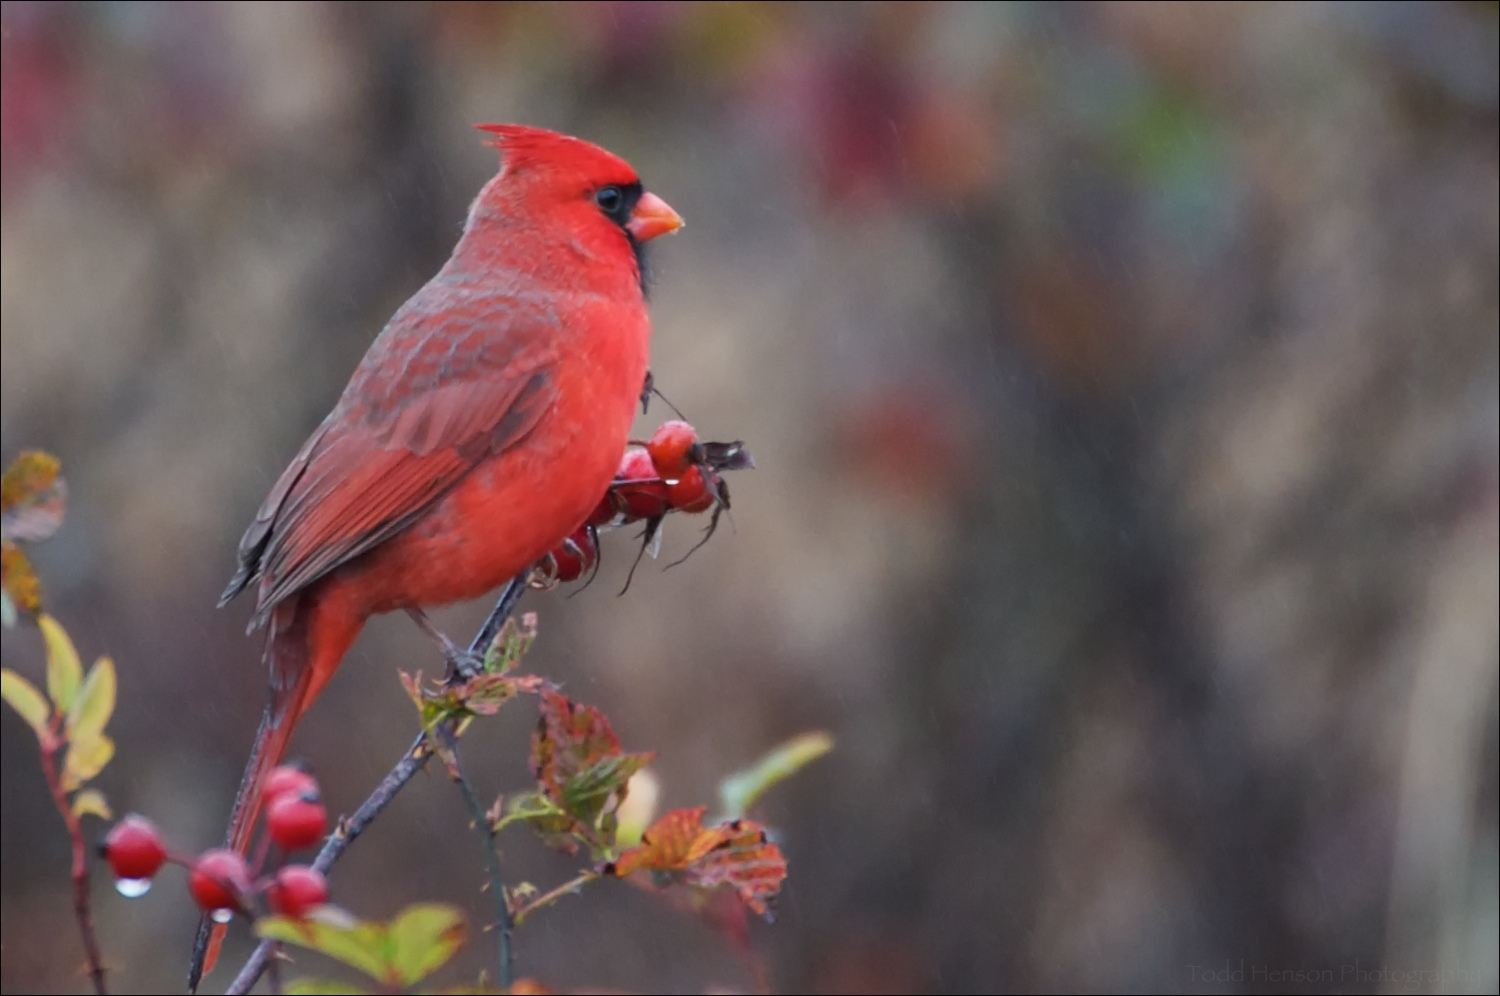 Male Northern Cardinal in drizzly rain